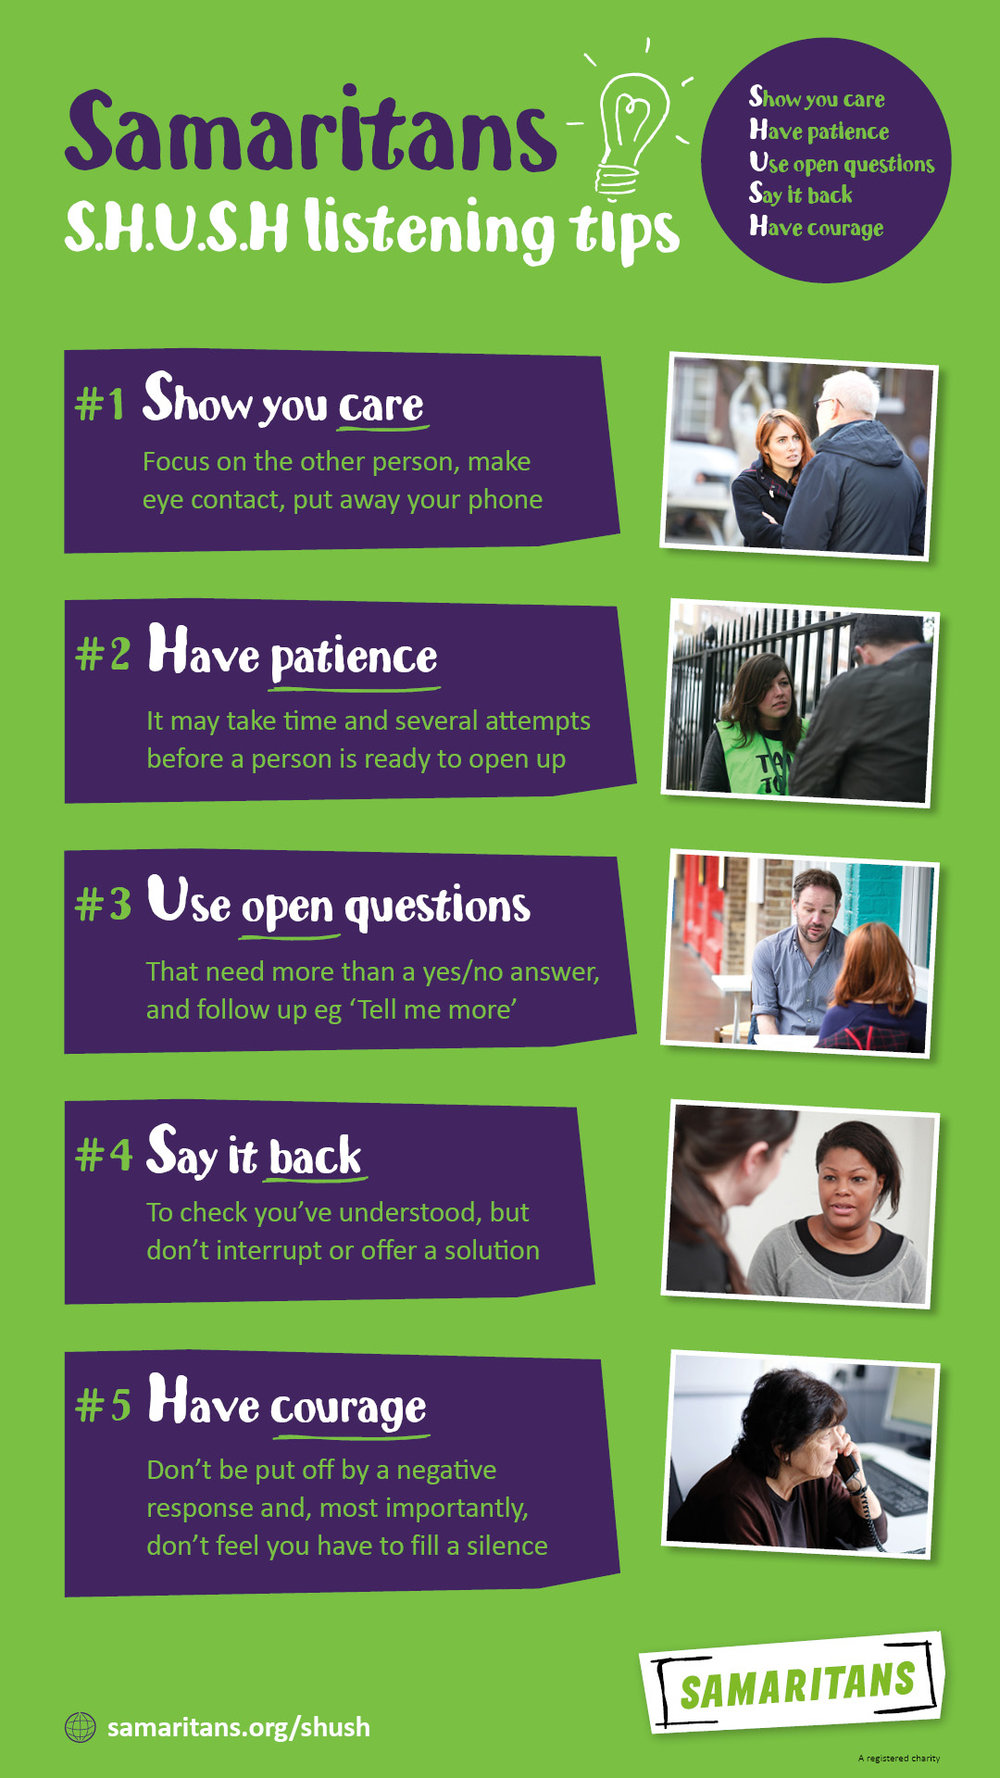 Image created by and for samaritans.org